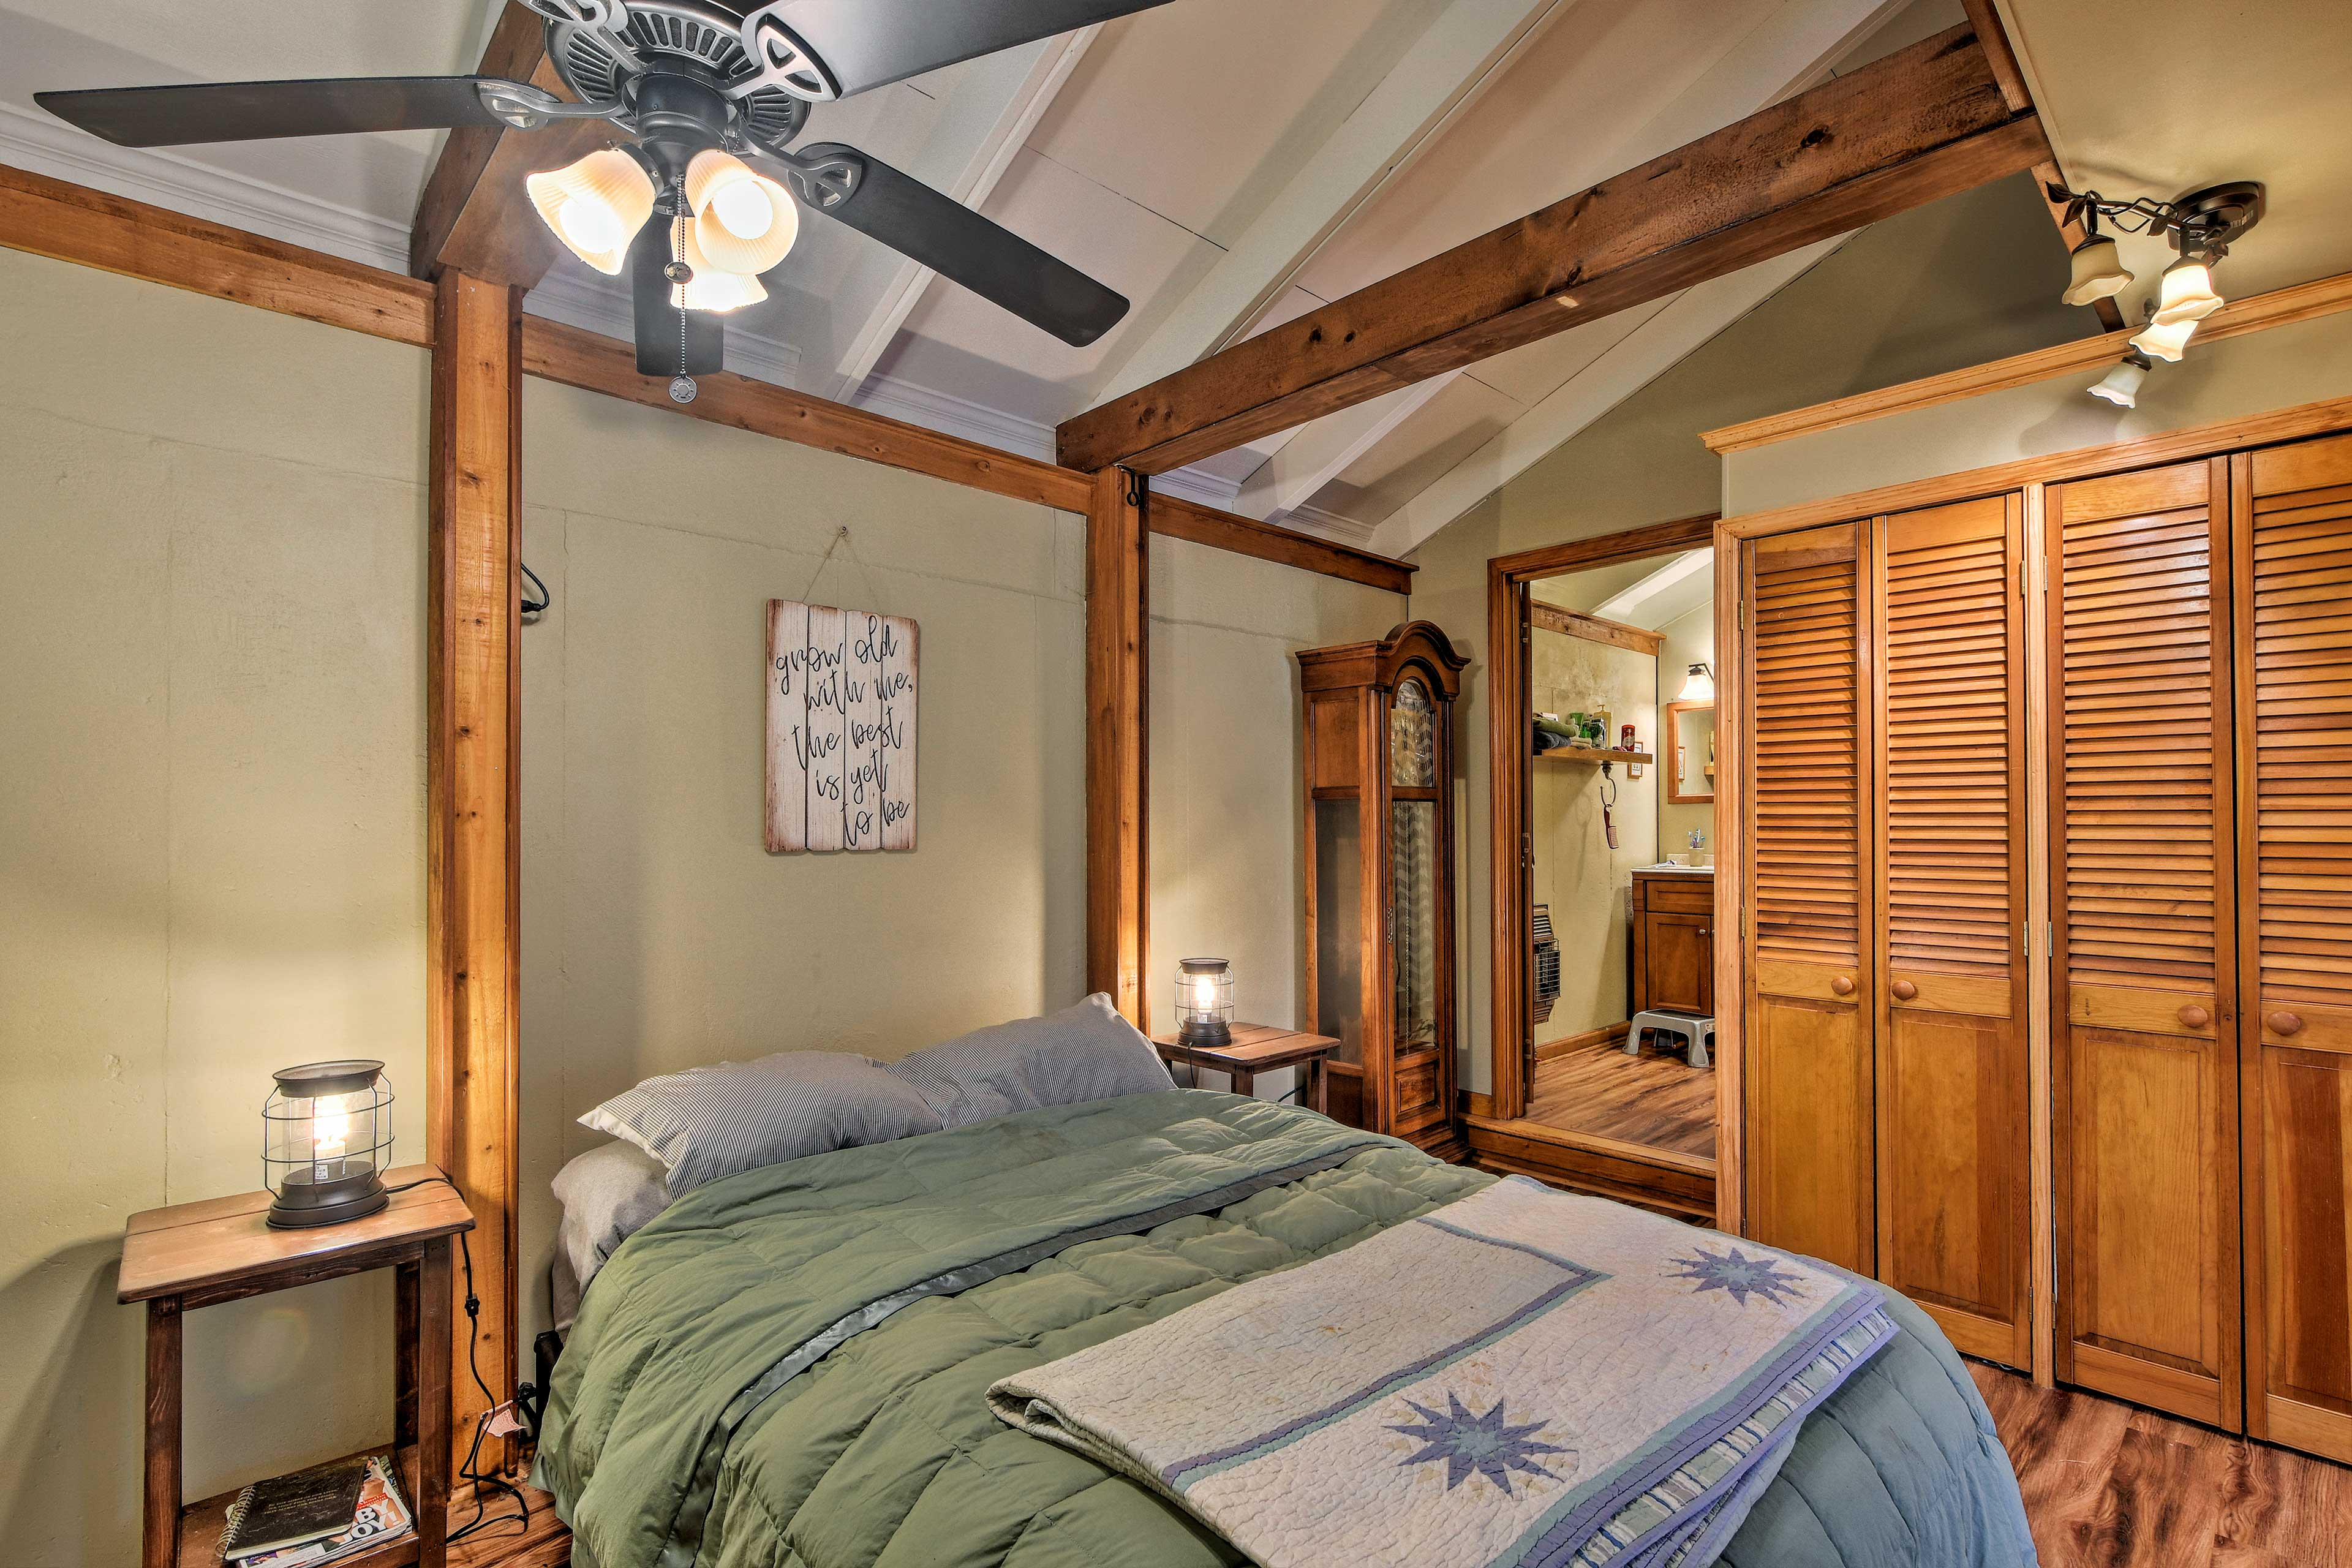 The cabin exudes a cozy, rustic style.